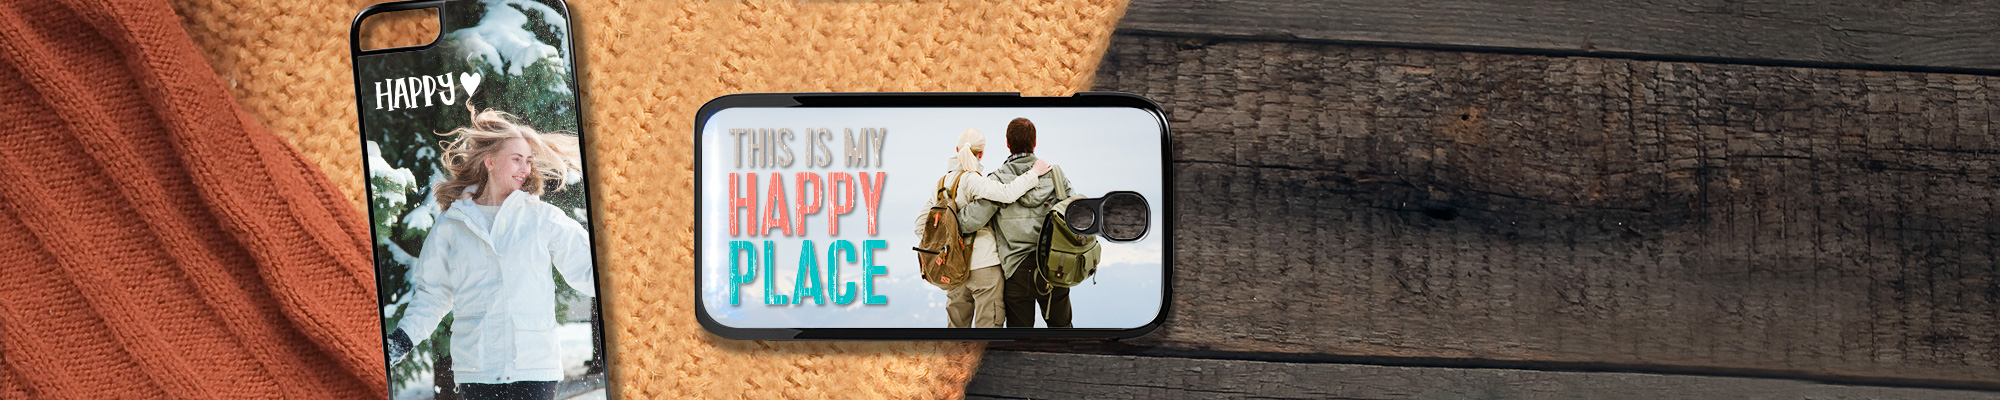 Personalised Phone cases Personalise your iPhone or Samsung phone with a personalised mobile phone case